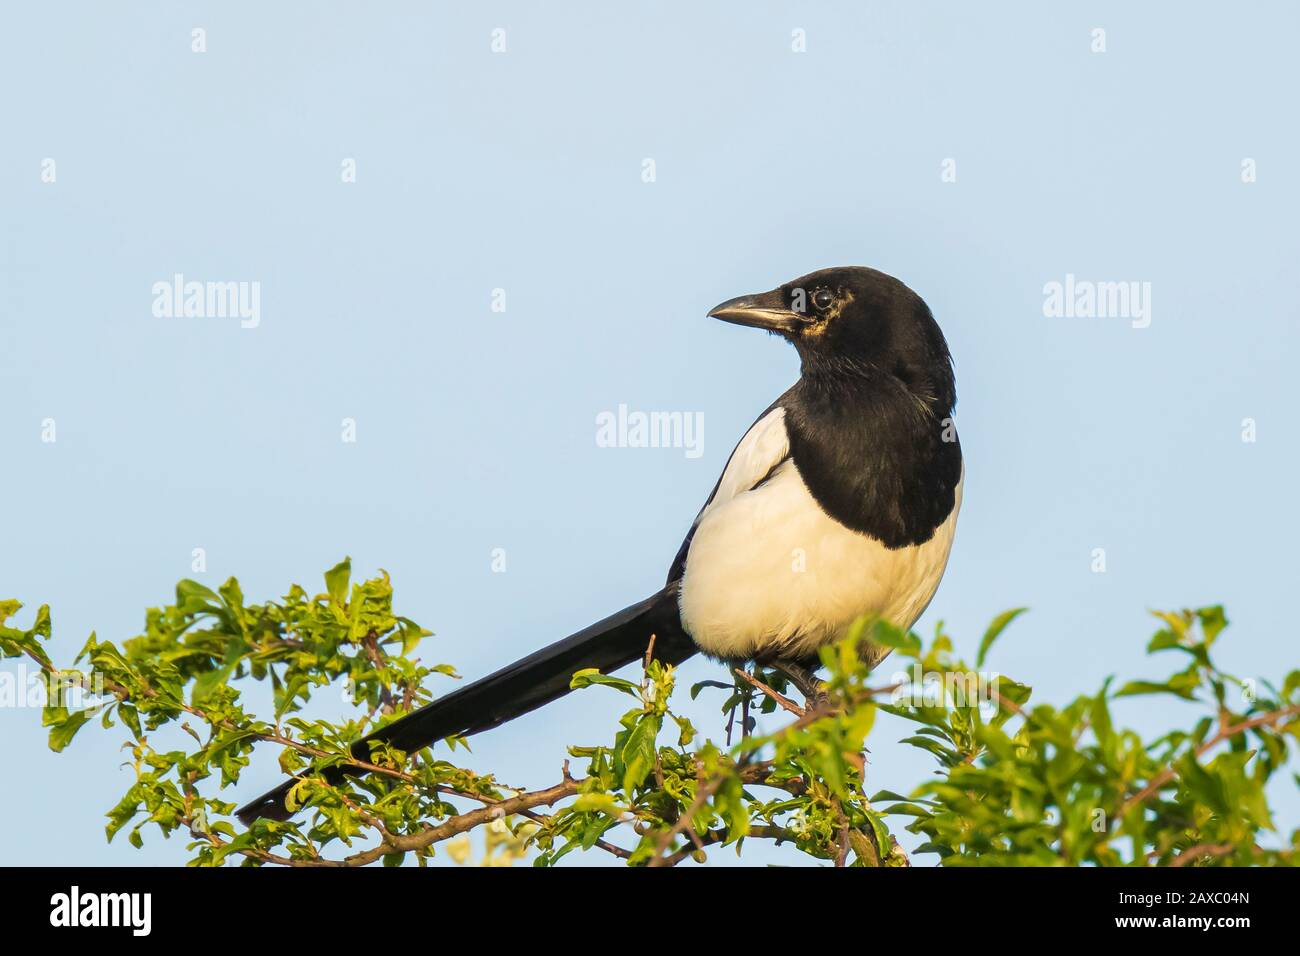 Eurasian magpie or common magpie Pica pica perched in a tree during a beautiful sunset Stock Photo